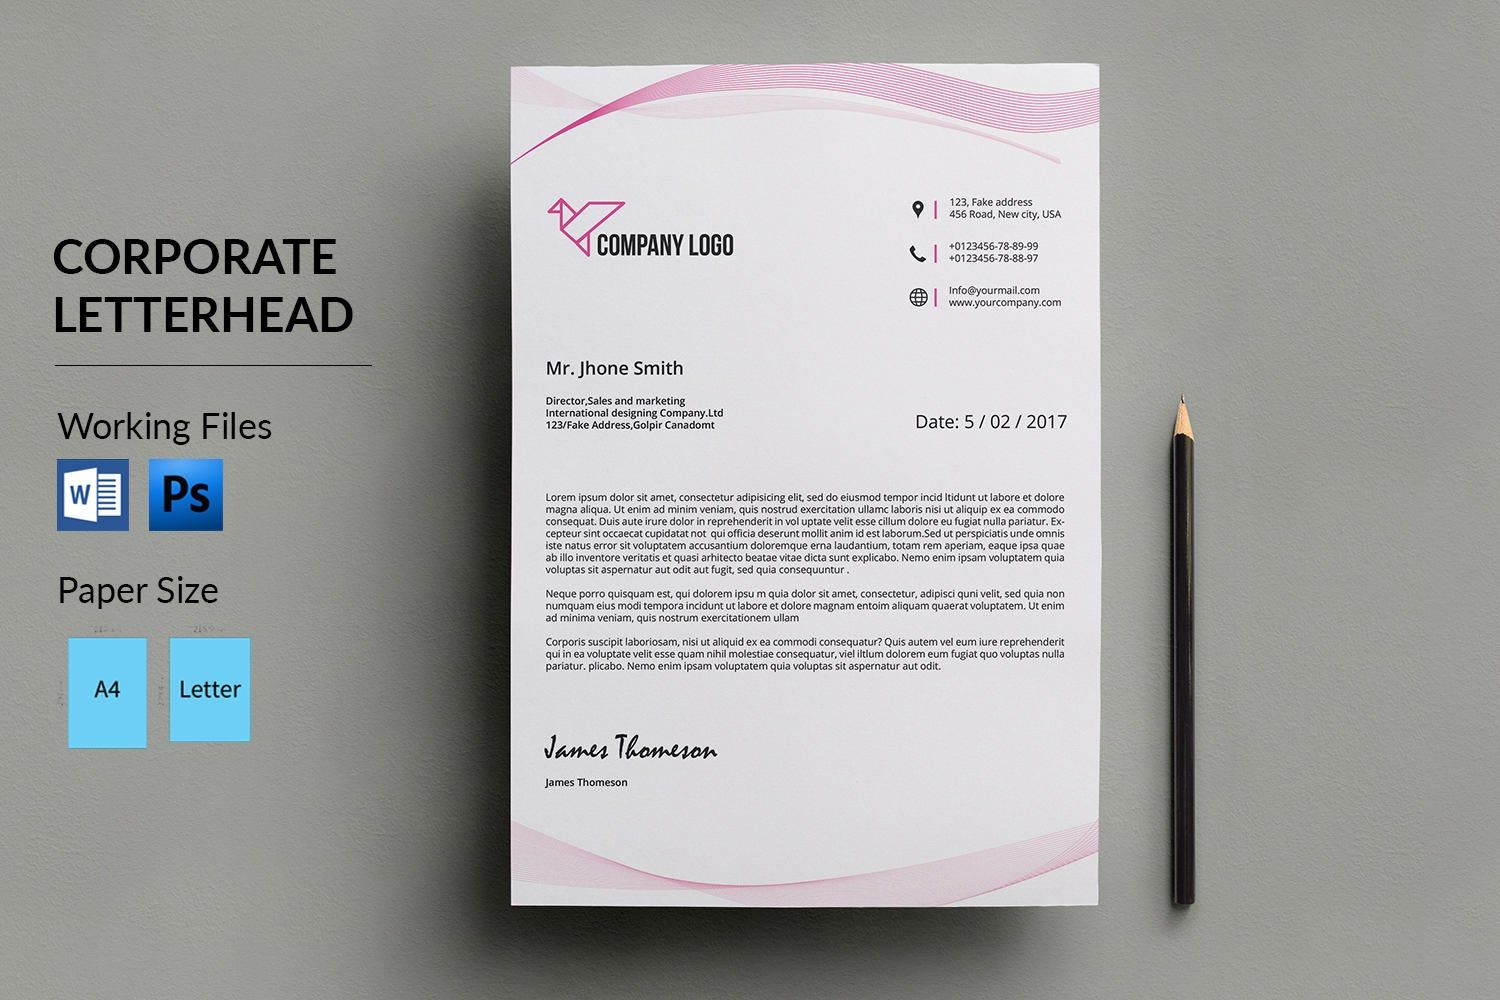 letterhead template business printable objective for resume any position tcs entry level marketing coordinator